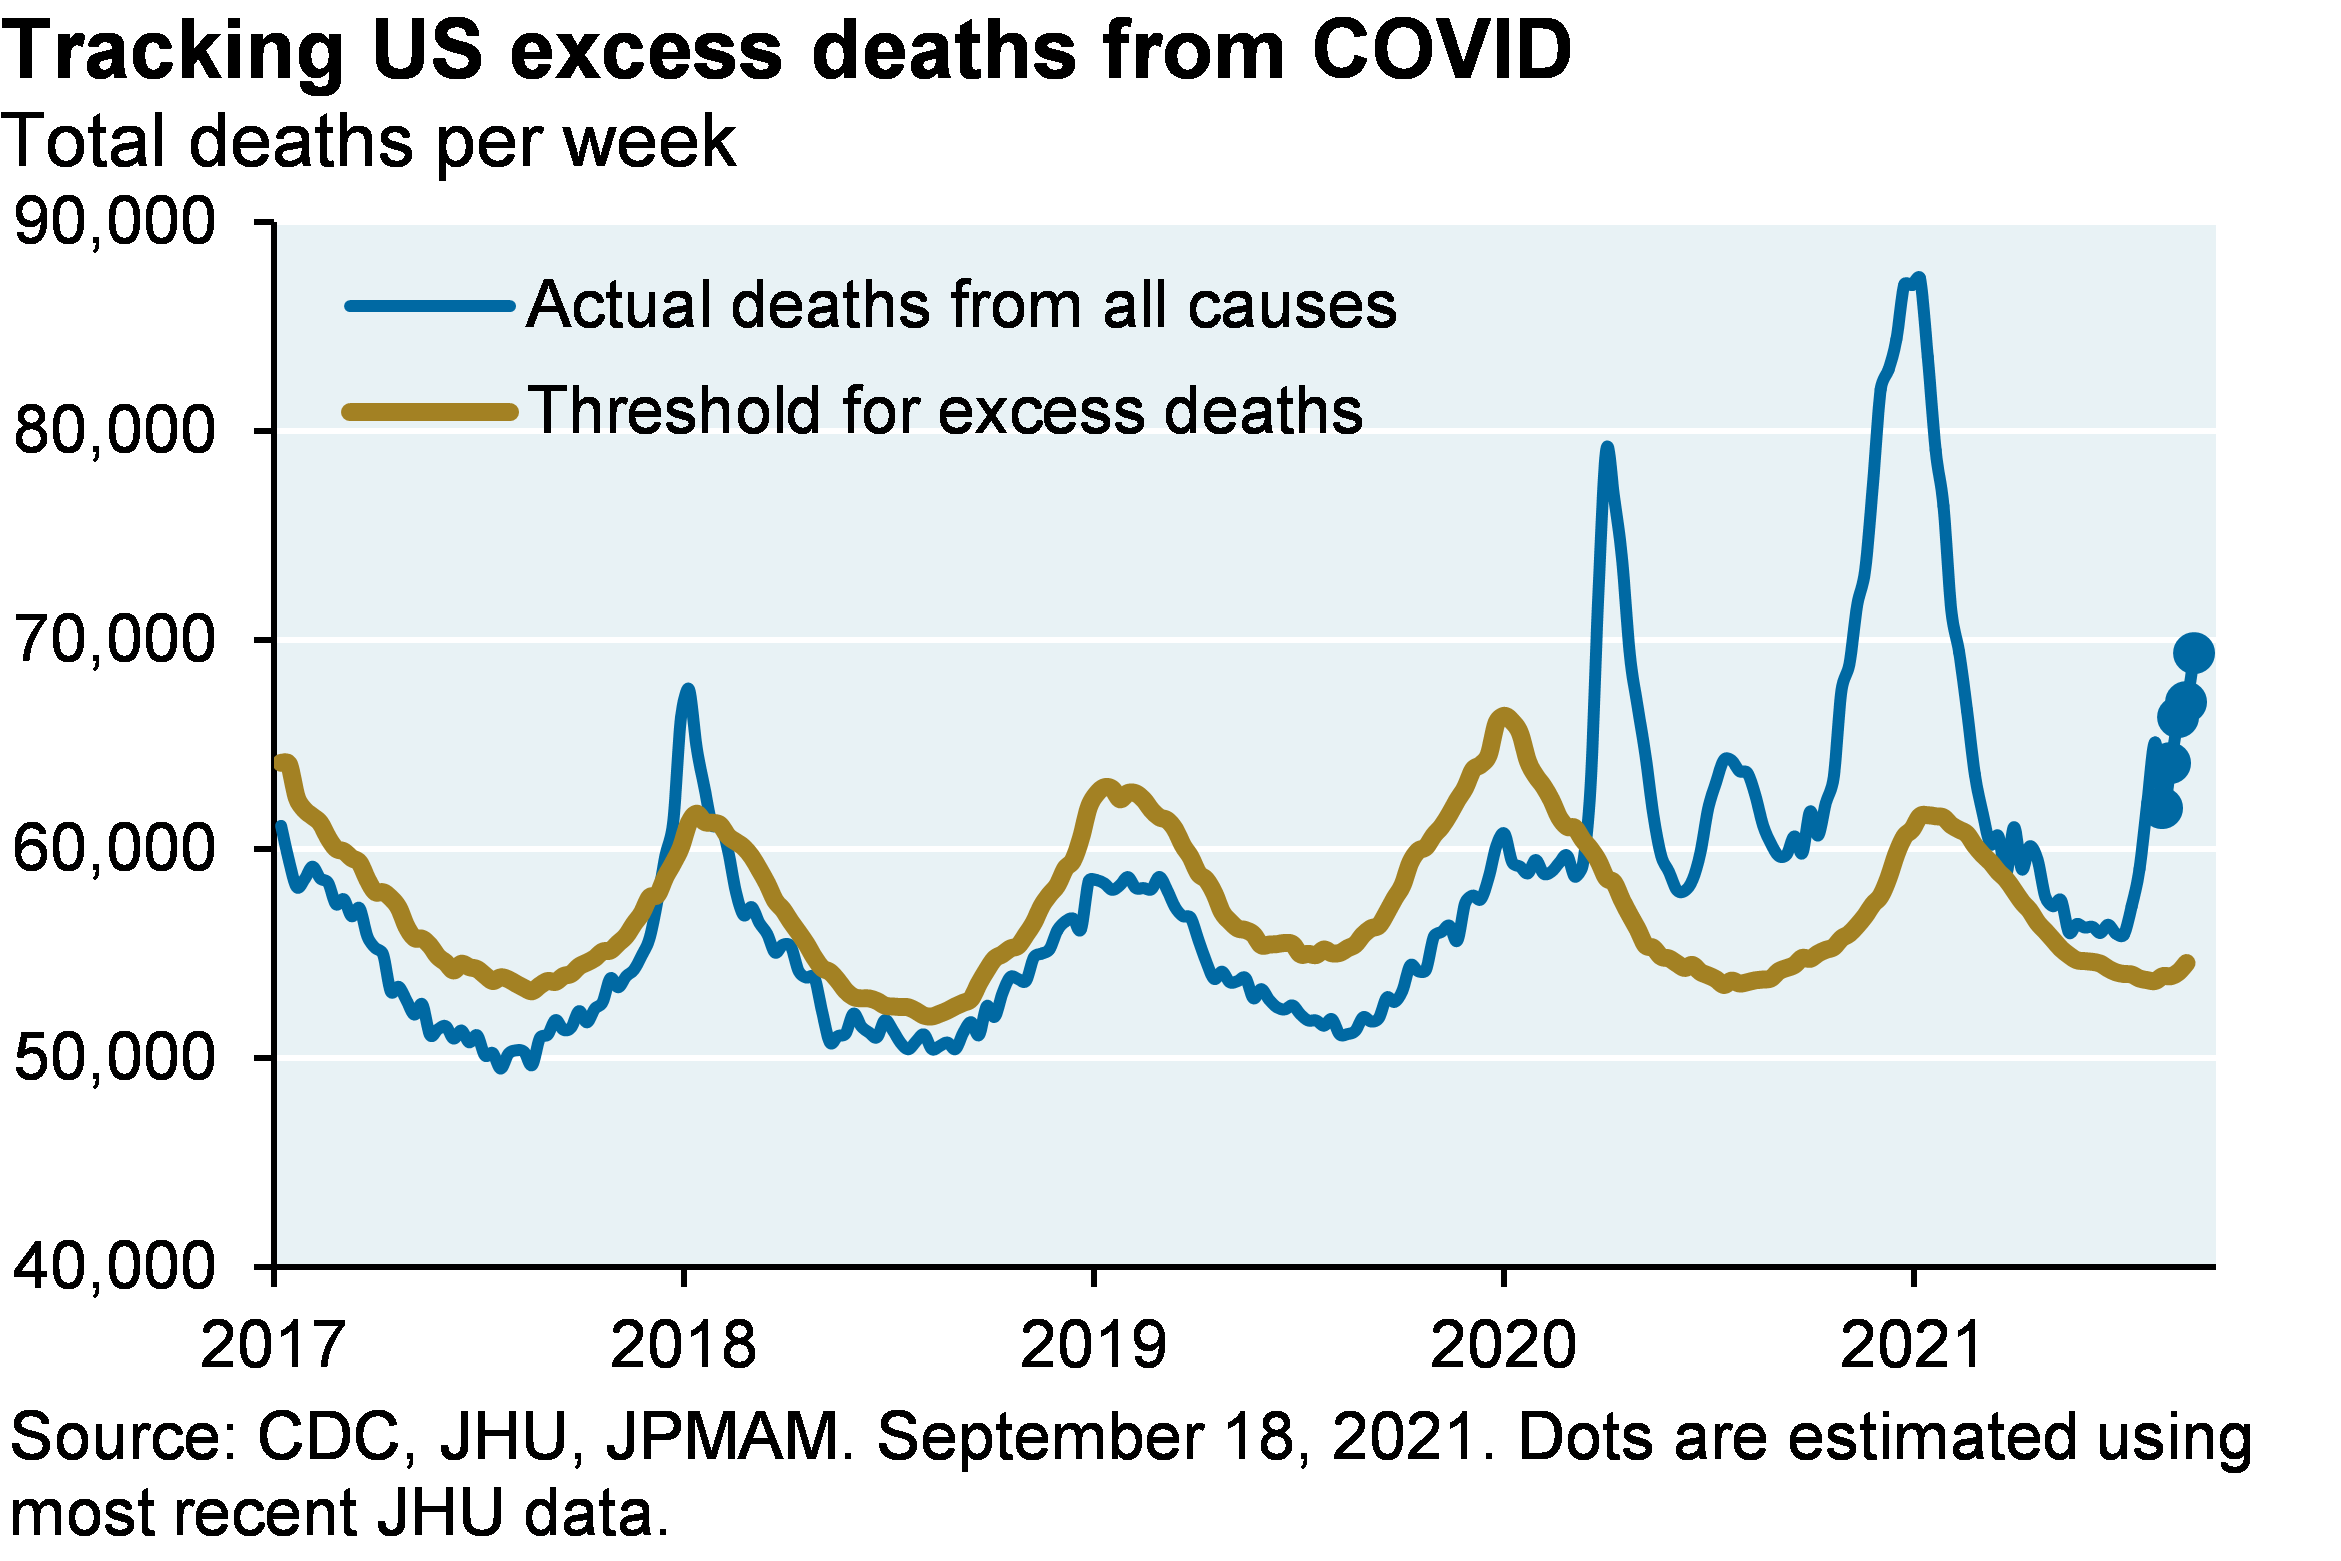 Line chart shows actual deaths per week from all causes vs the threshold for excess deaths from 2017 to 2021. Actual deaths from all causes were below the threshold from 2017 to the start of COVID, with the exception of a brief spike in 2018. Actual deaths from all causes spiked at the end of 2020 at about 90,000 before dropping to the threshold. Recently, however, actual deaths have started to pick up again and are well above seasonal trends (about 70,000 actual deaths per week)